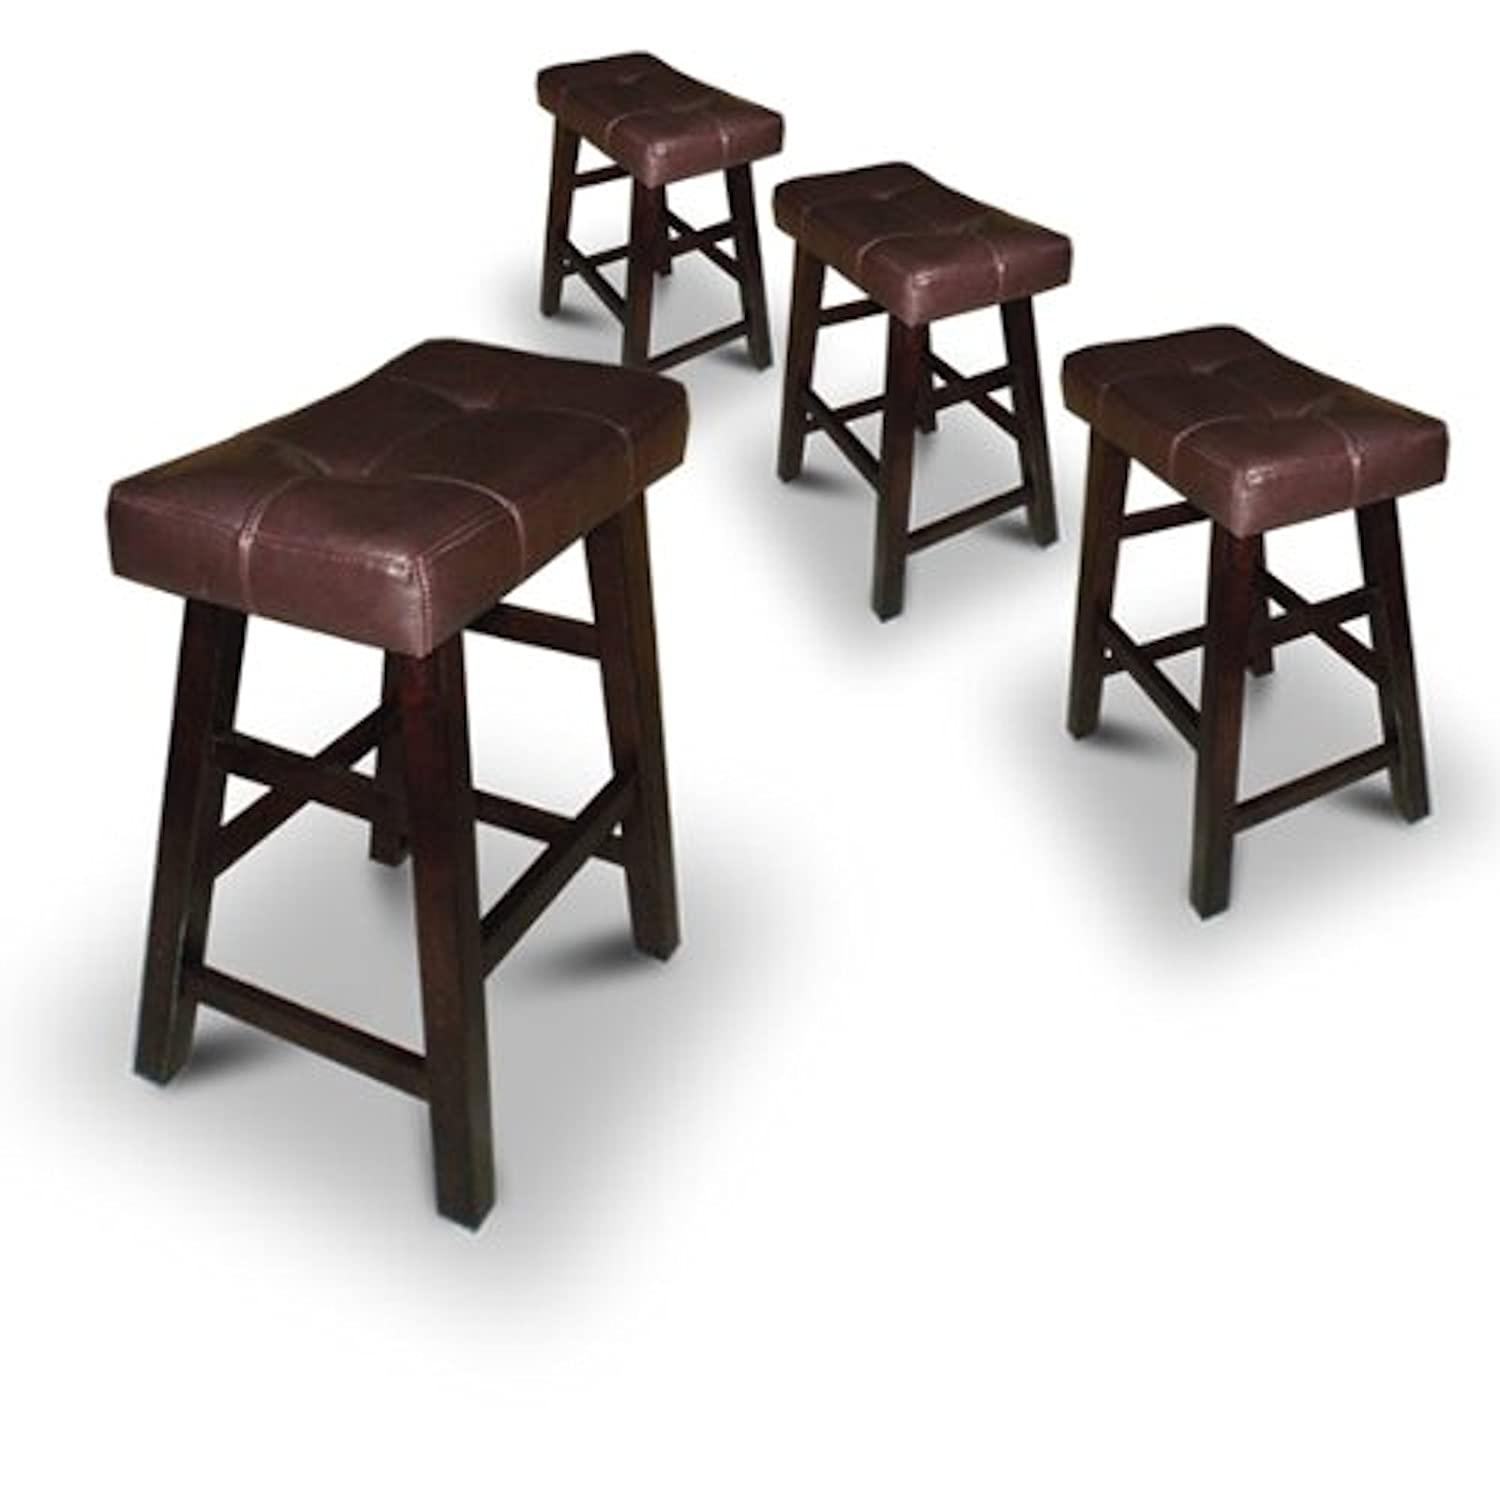 Amazon com legacy decor 4 29 dark espresso wood bar stools with bonded faux leather seat kitchen dining